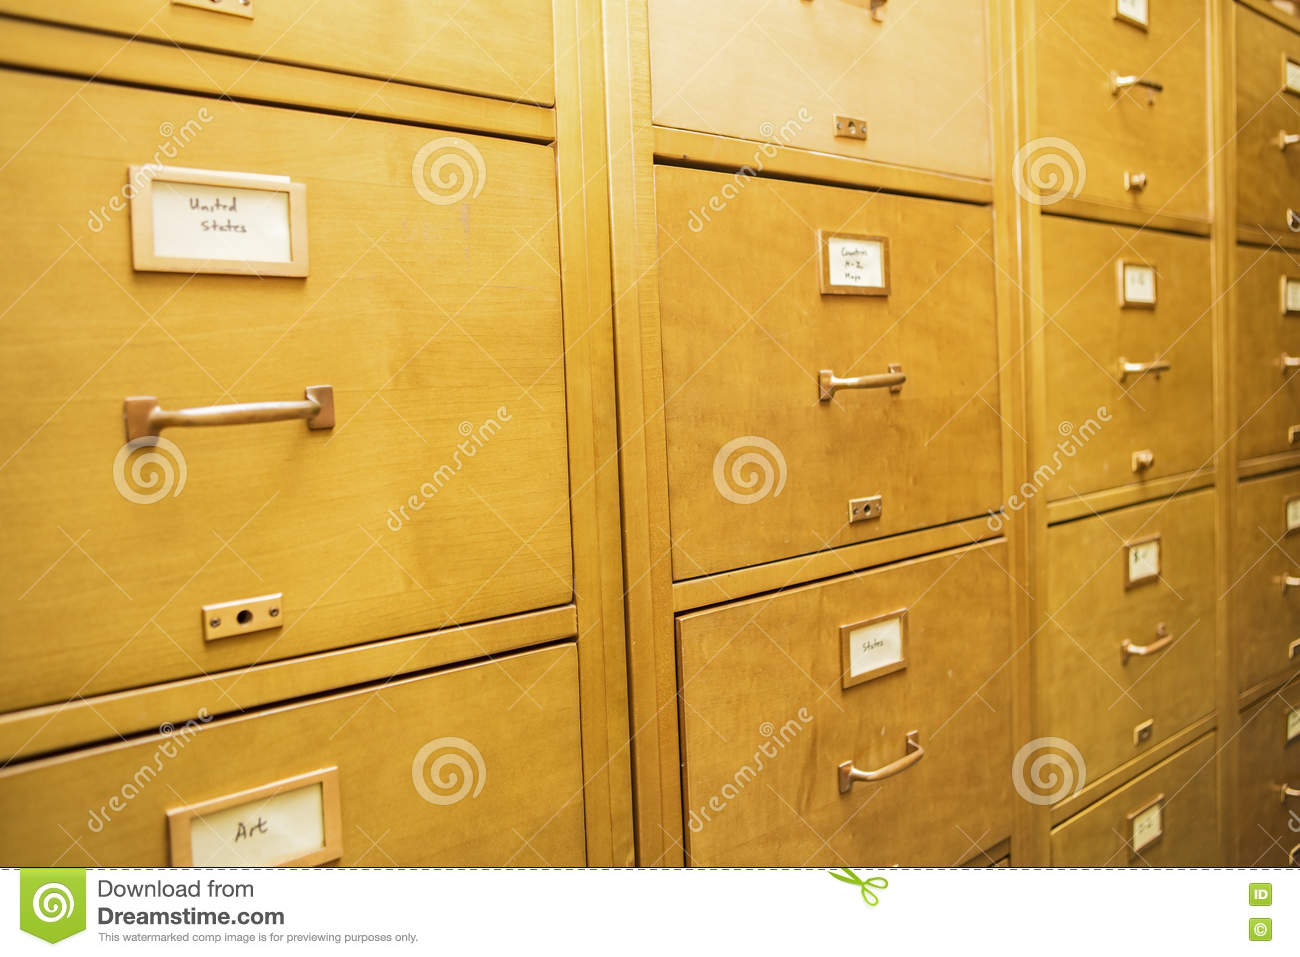 School Wooden Cabinets ~ Library index card cabinets wooden education filing school